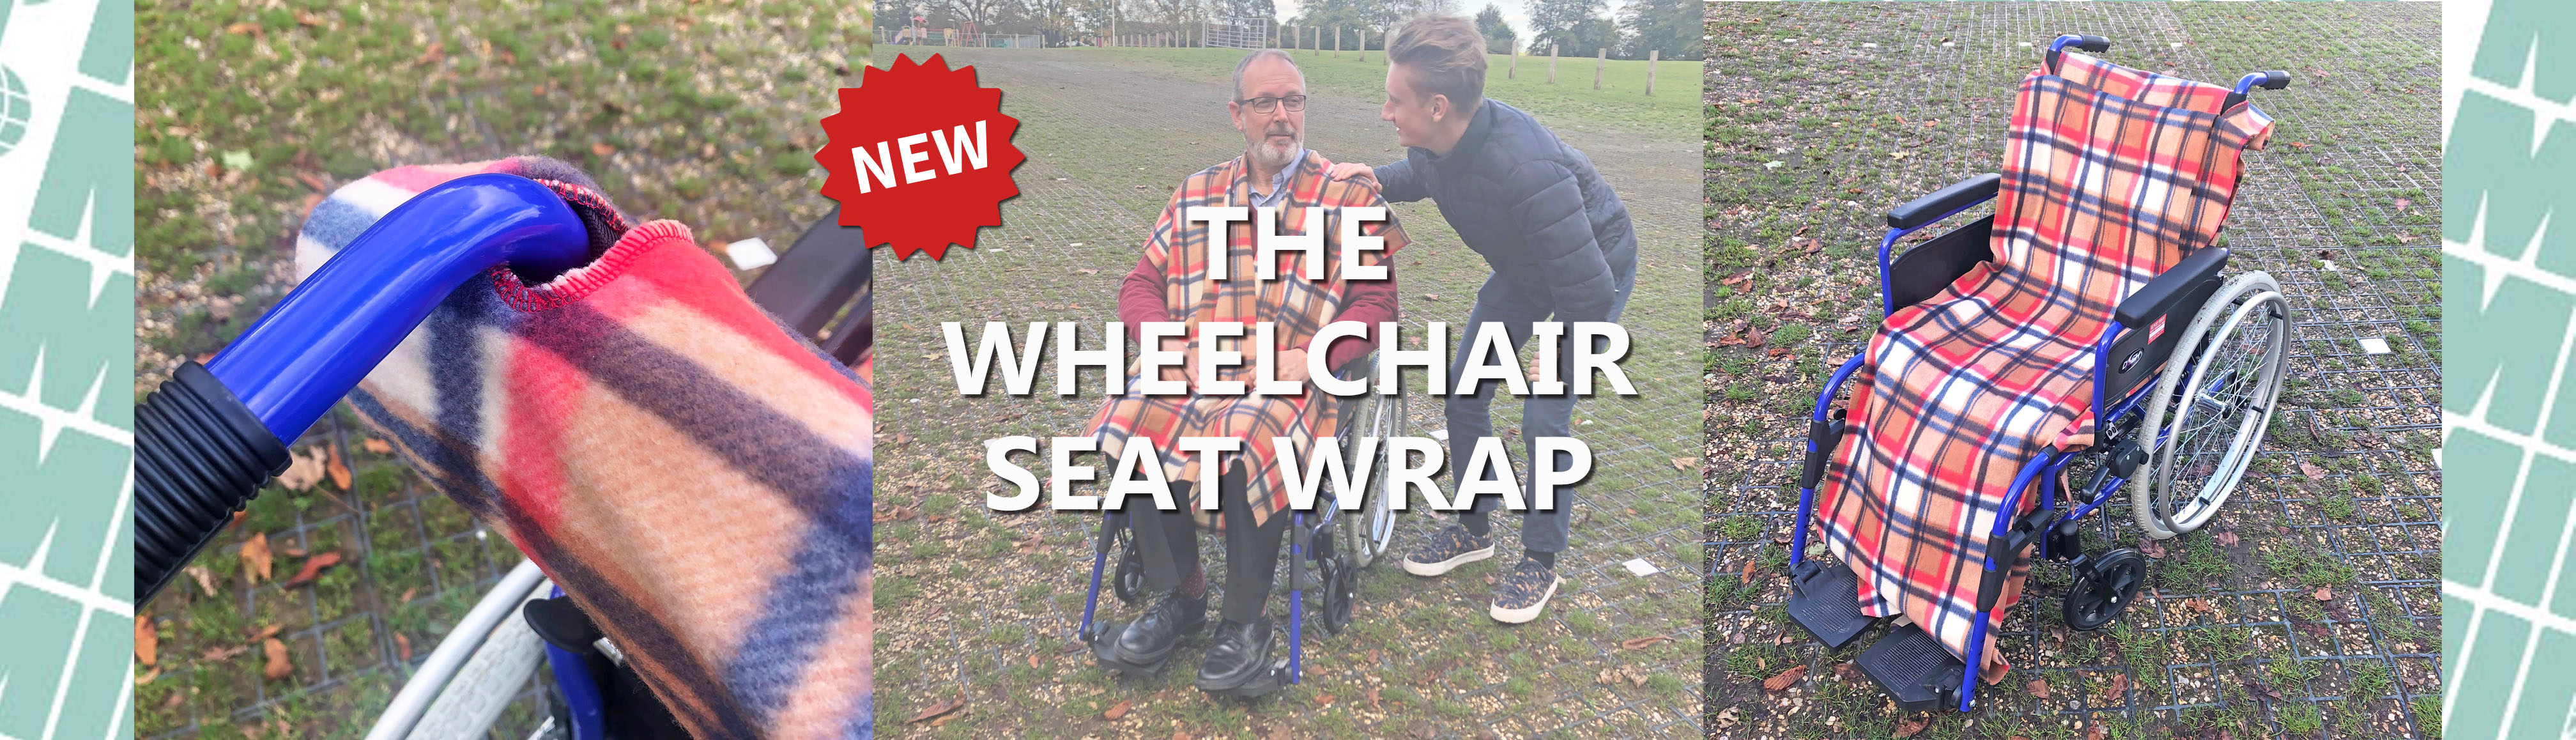 Wheelchair_Seat_Wrap-2